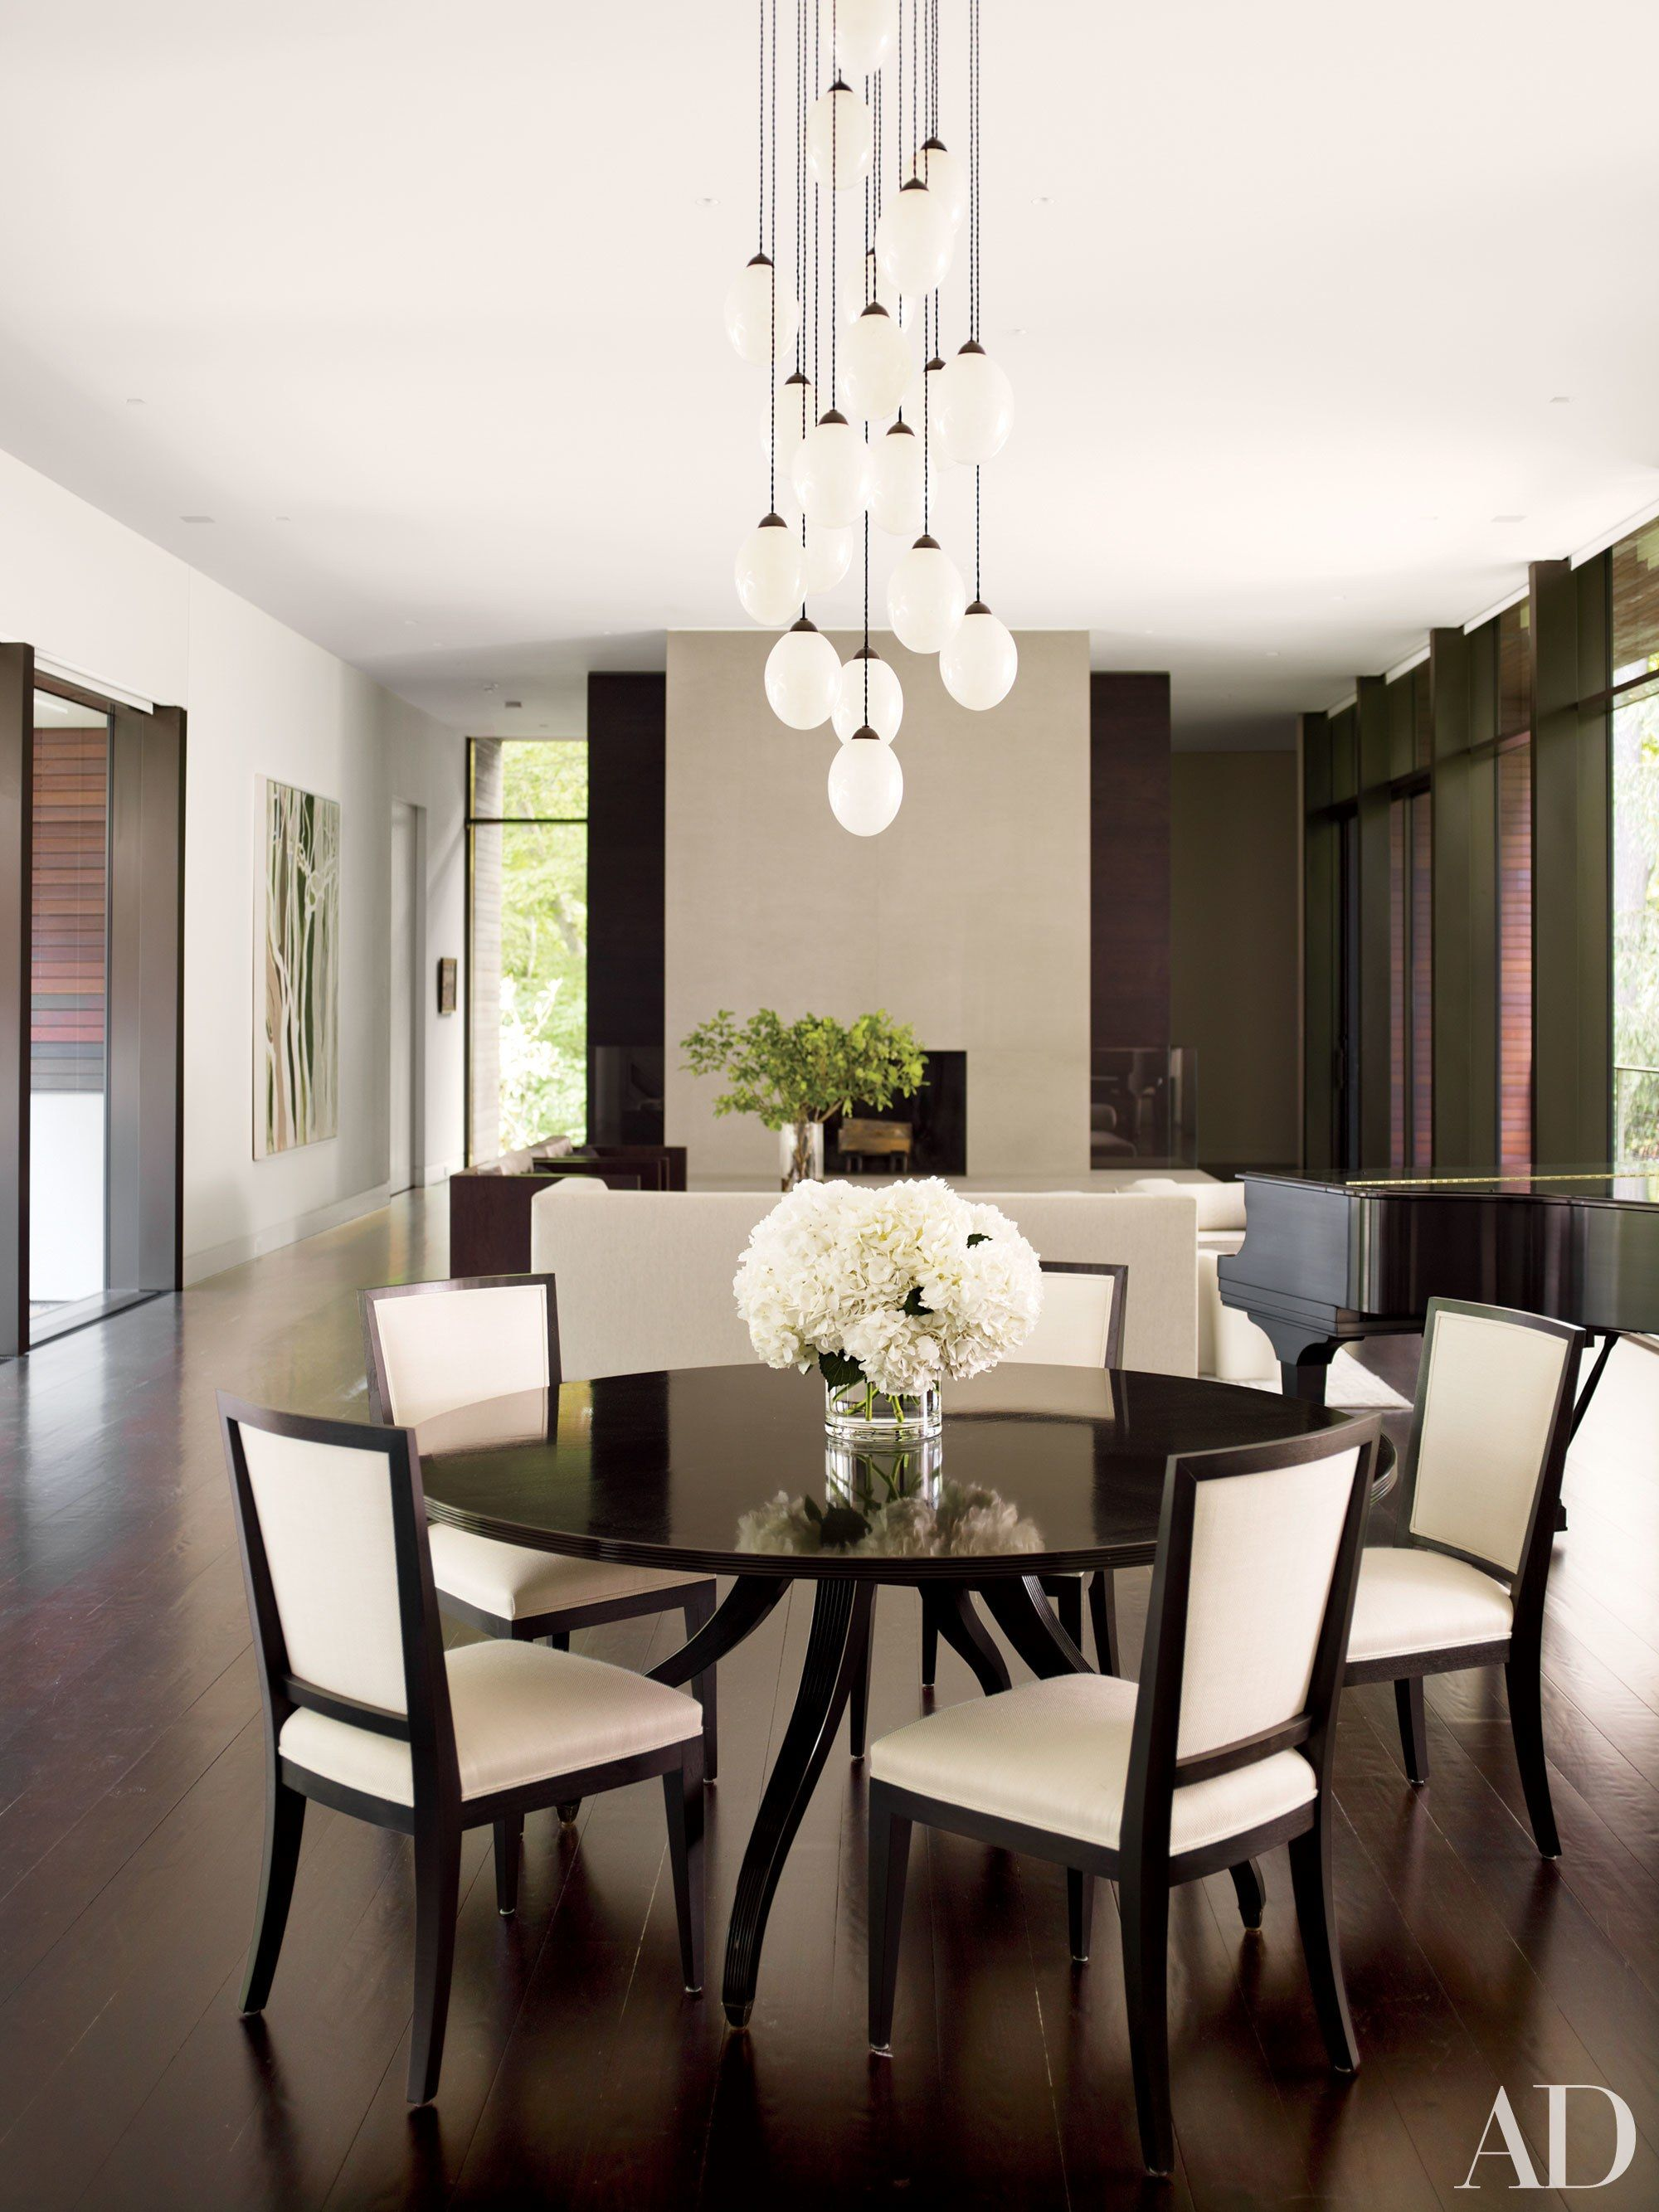 12 Glass Orb Light Fixtures That Make A Statement Dining Room Furniture Modern Dining Room Contemporary Luxury Dining Room